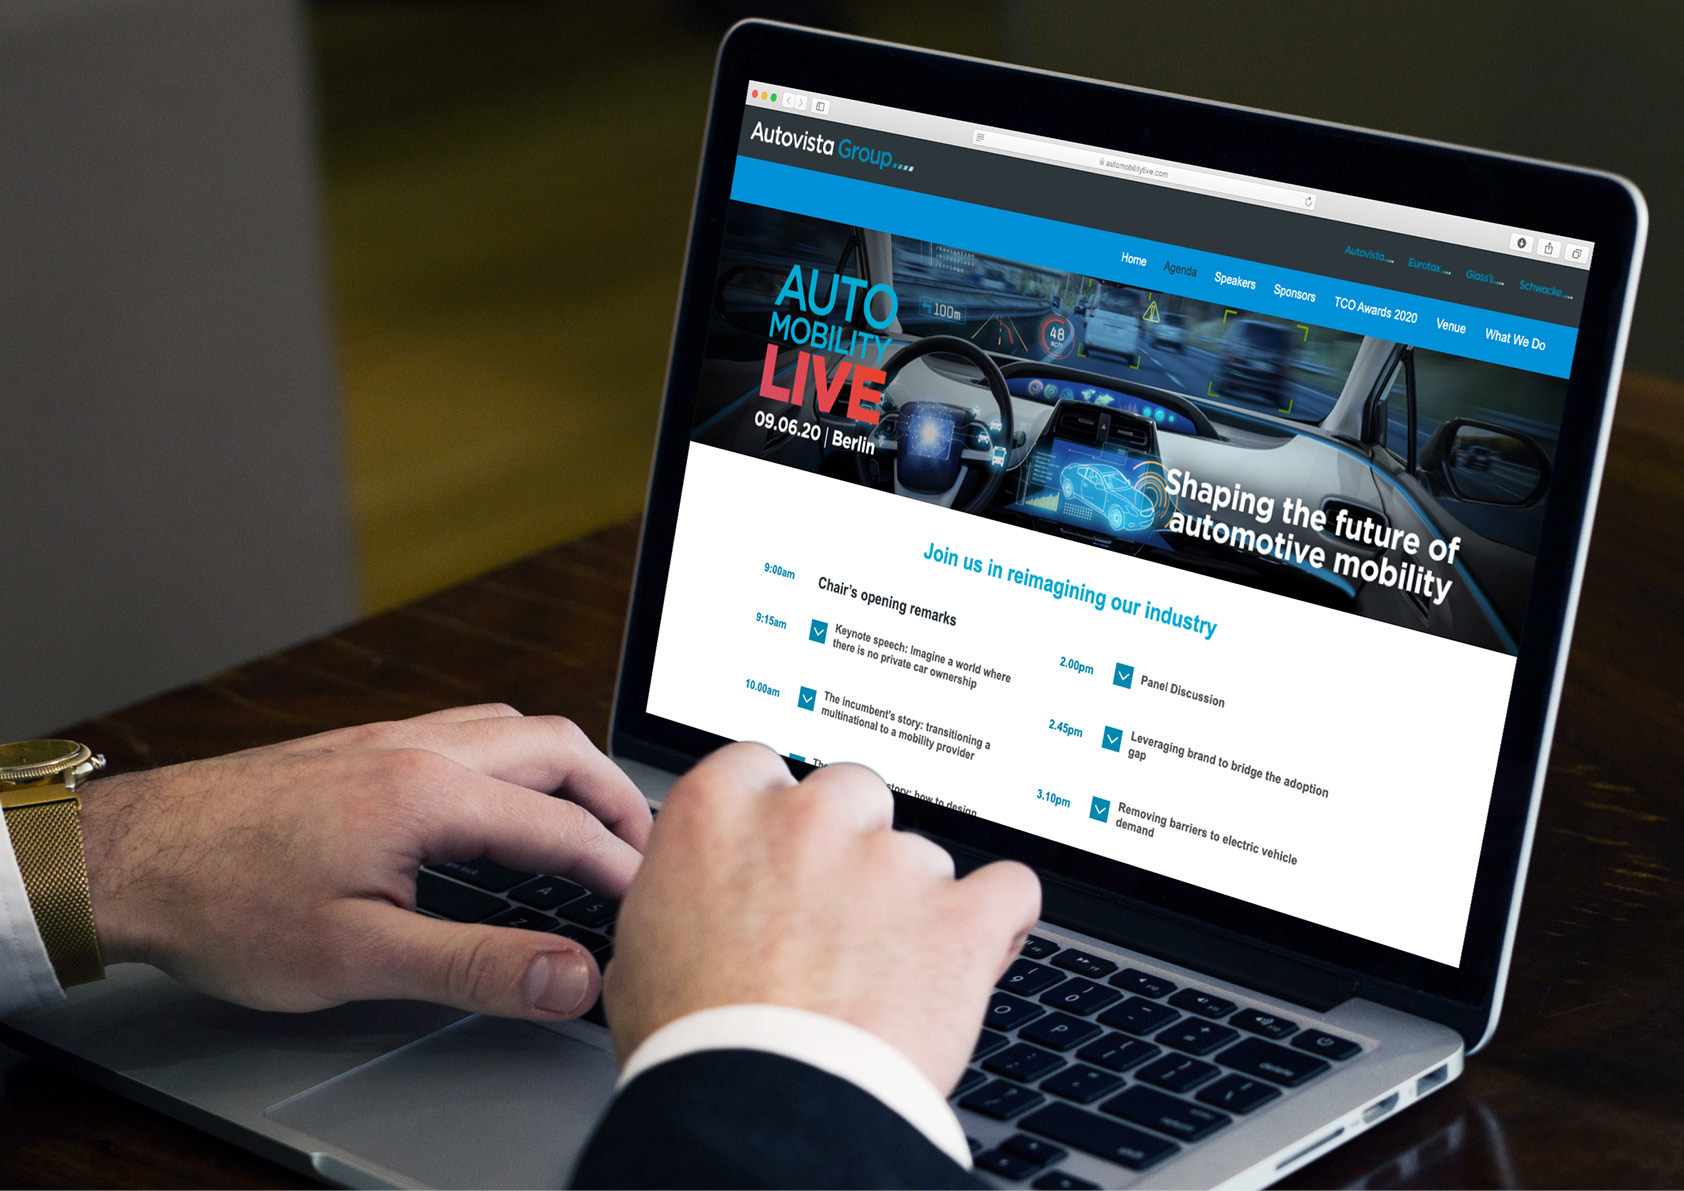 Autovista-Group–Auto-Mobilty-Live–Website-in-use